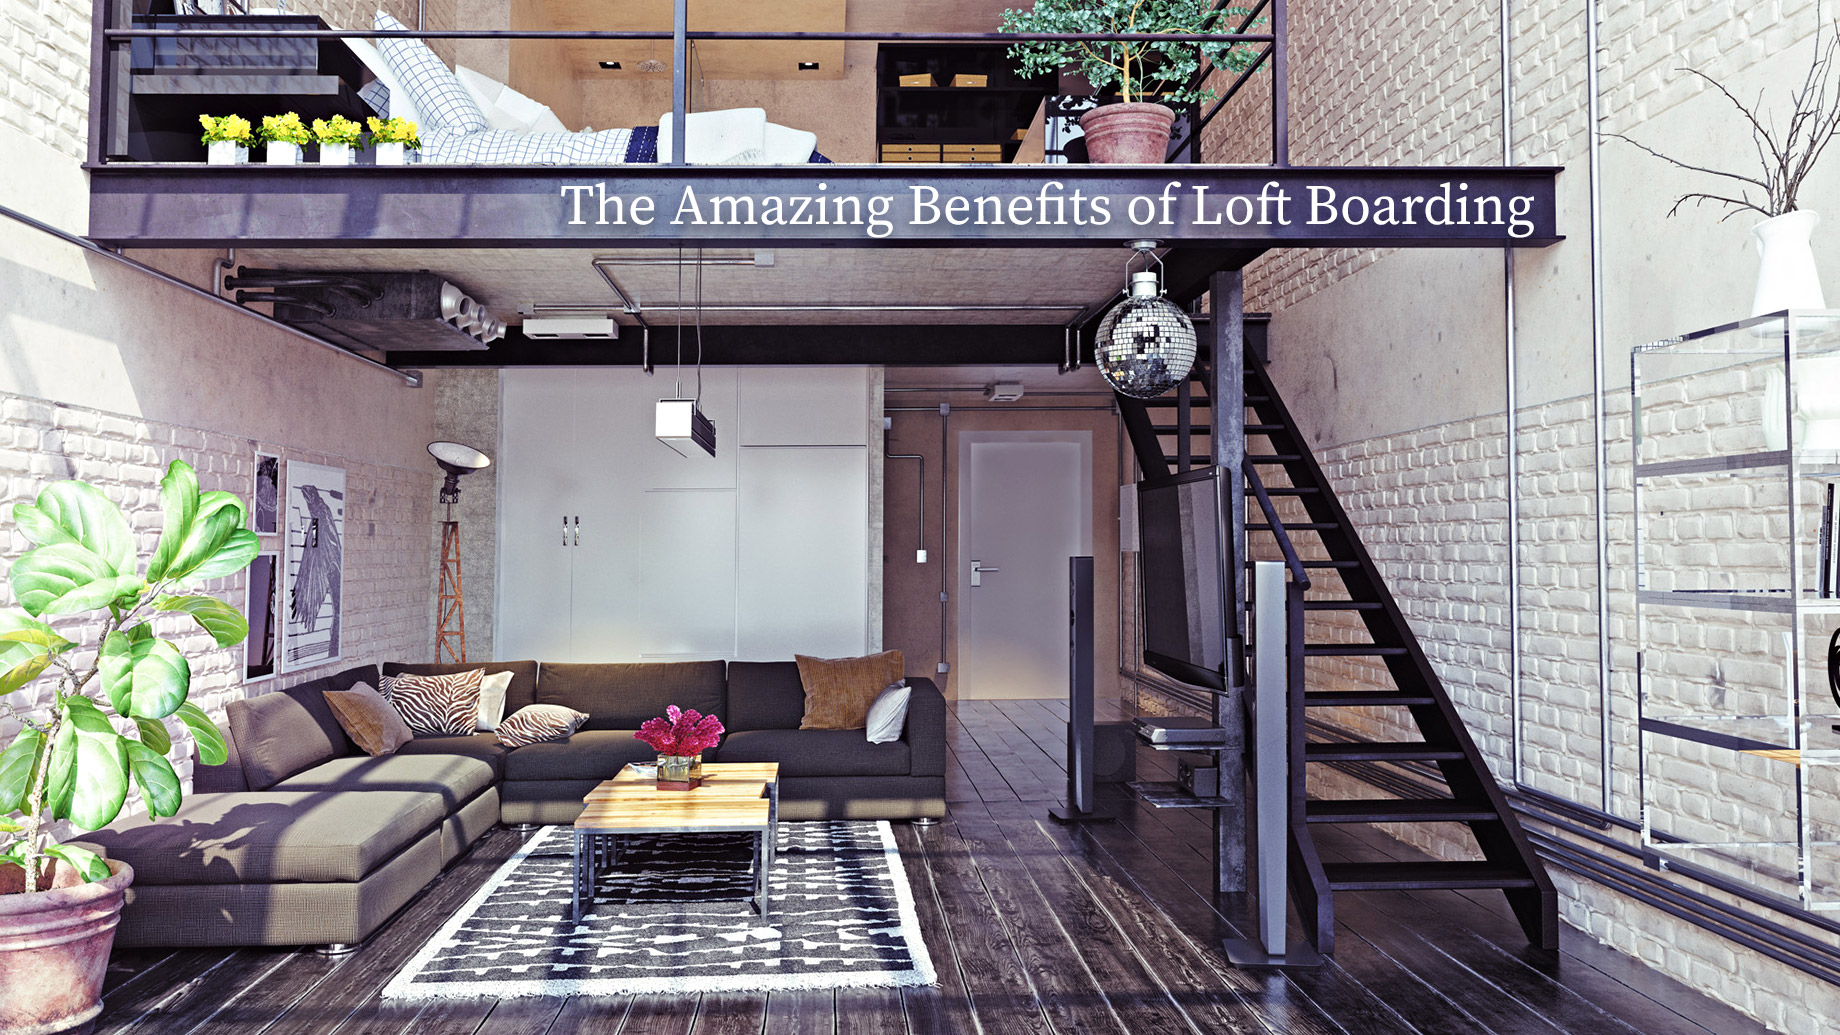 The Amazing Benefits of Loft Boarding